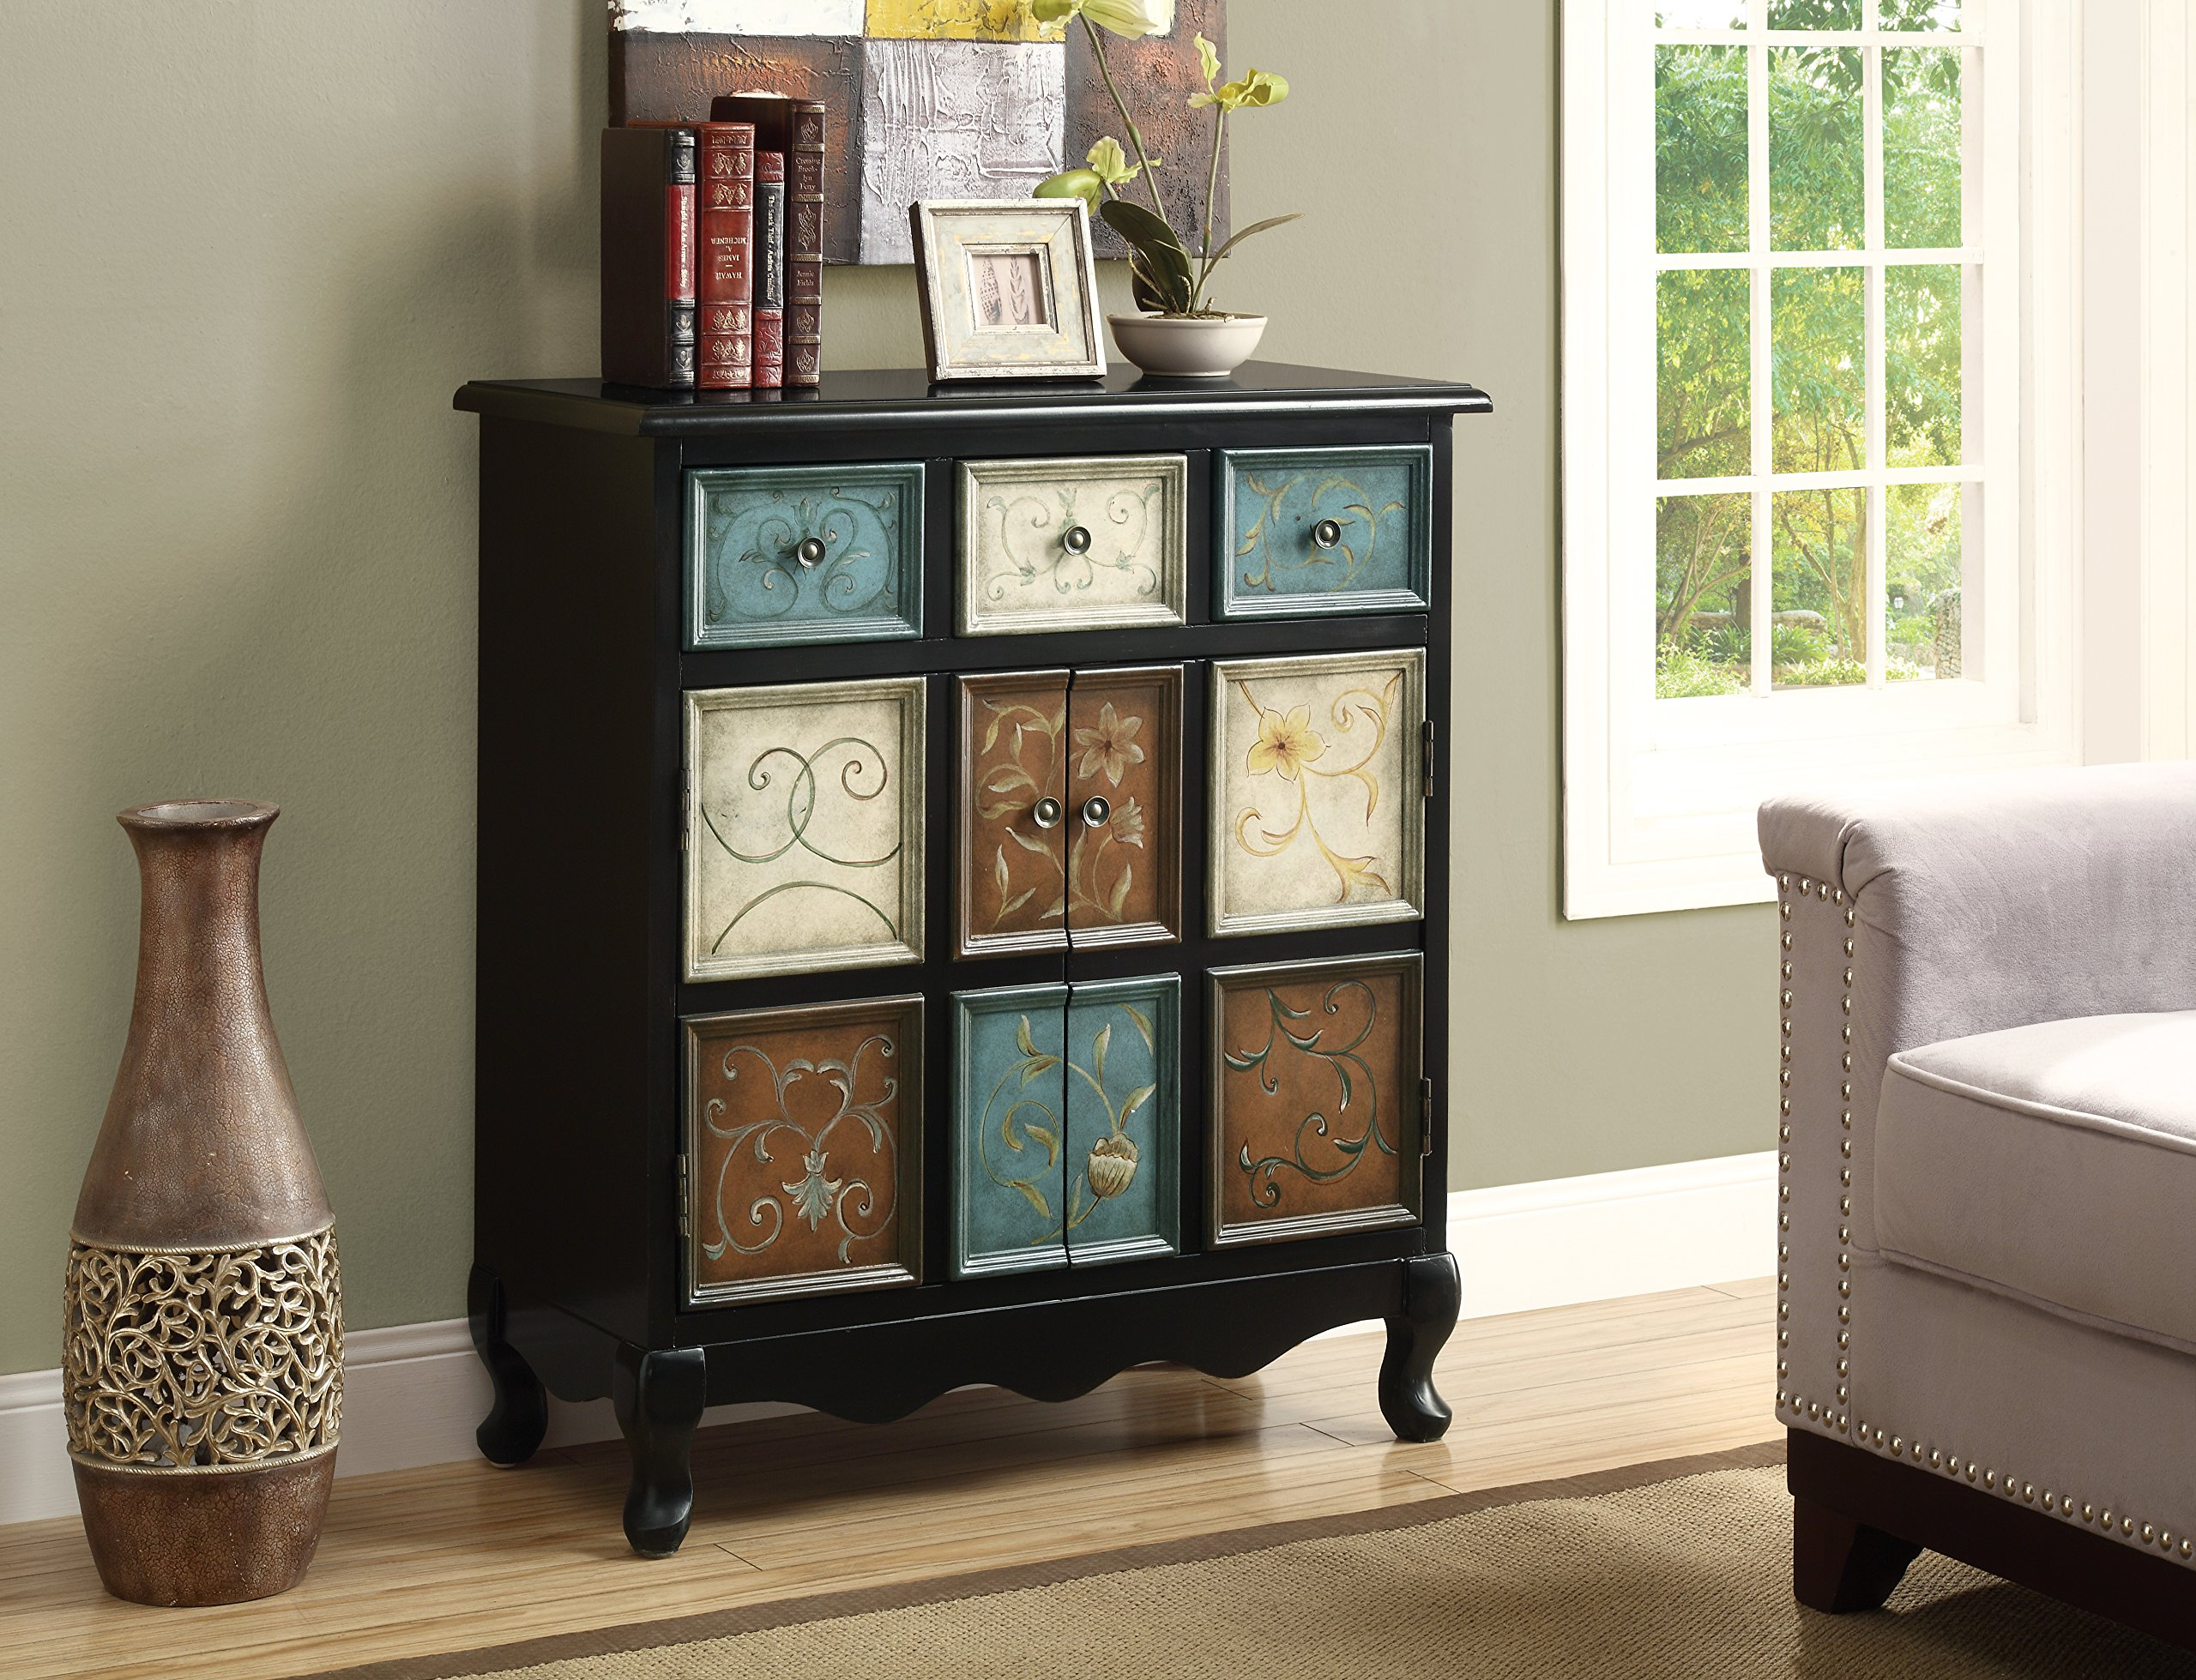 Monarch Apothecary Bombay Chest, Distressed Black/ Multi Color